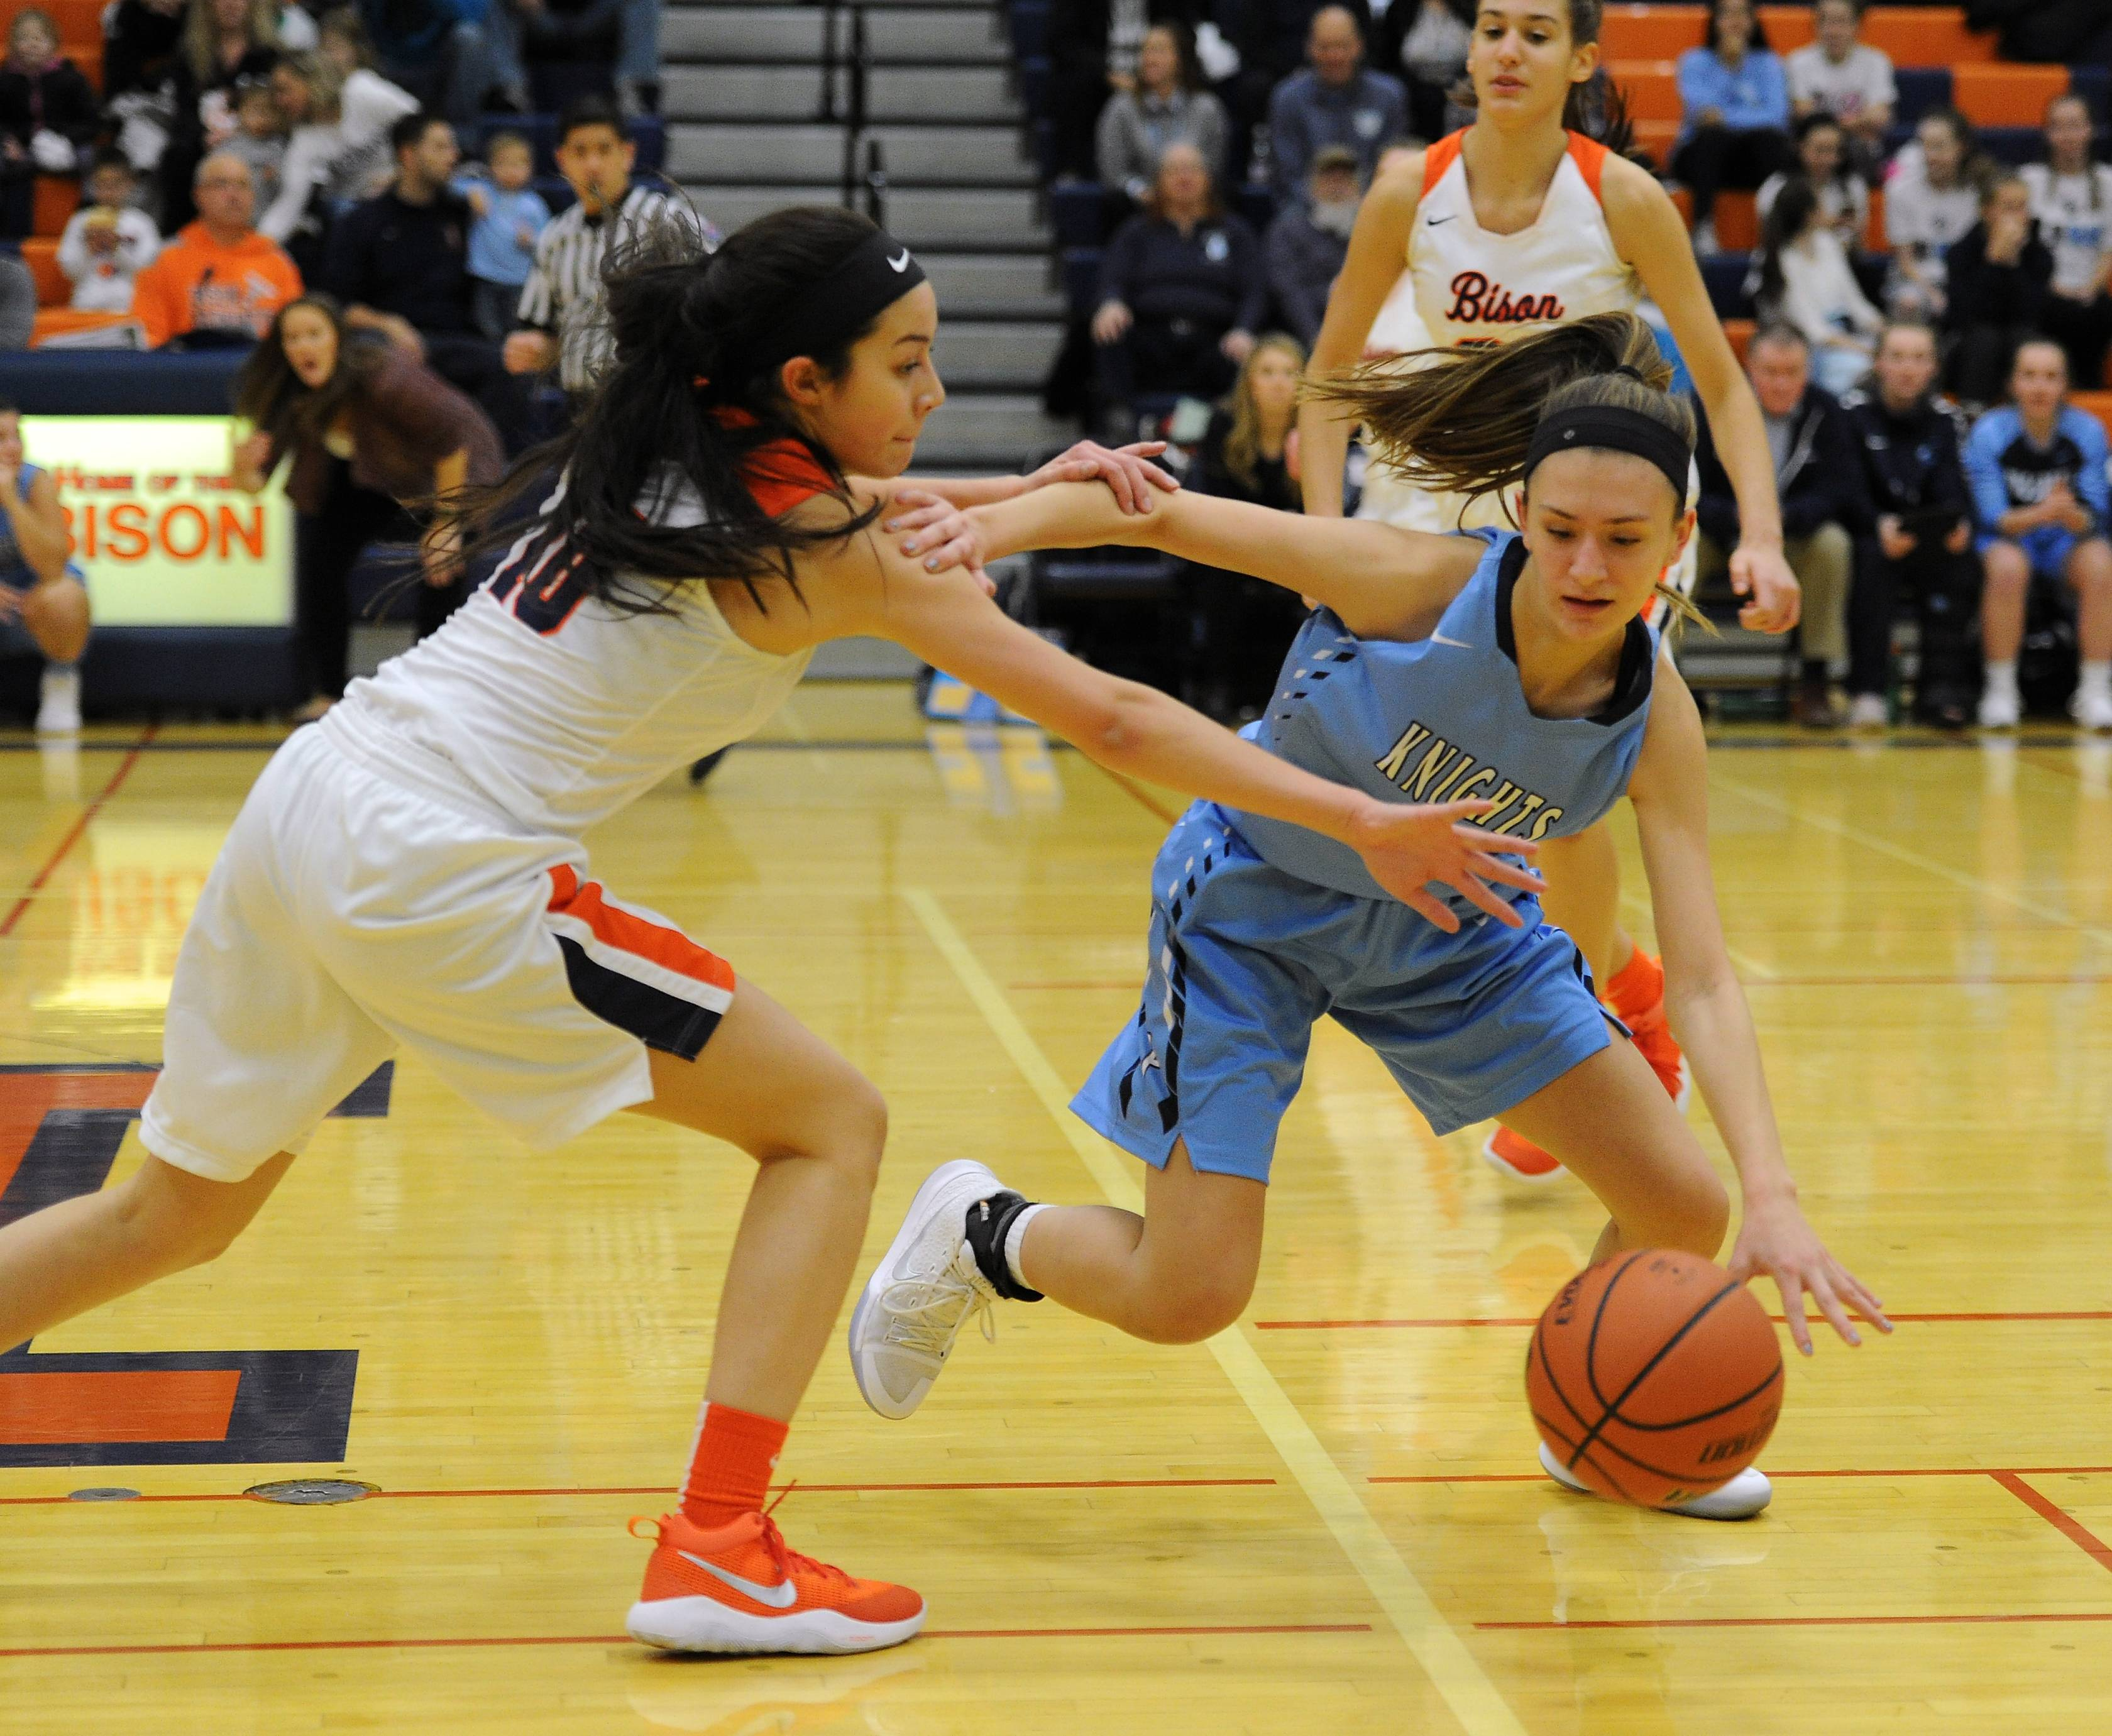 Images: Buffalo Grove vs. Prospect, girls and boys basketball